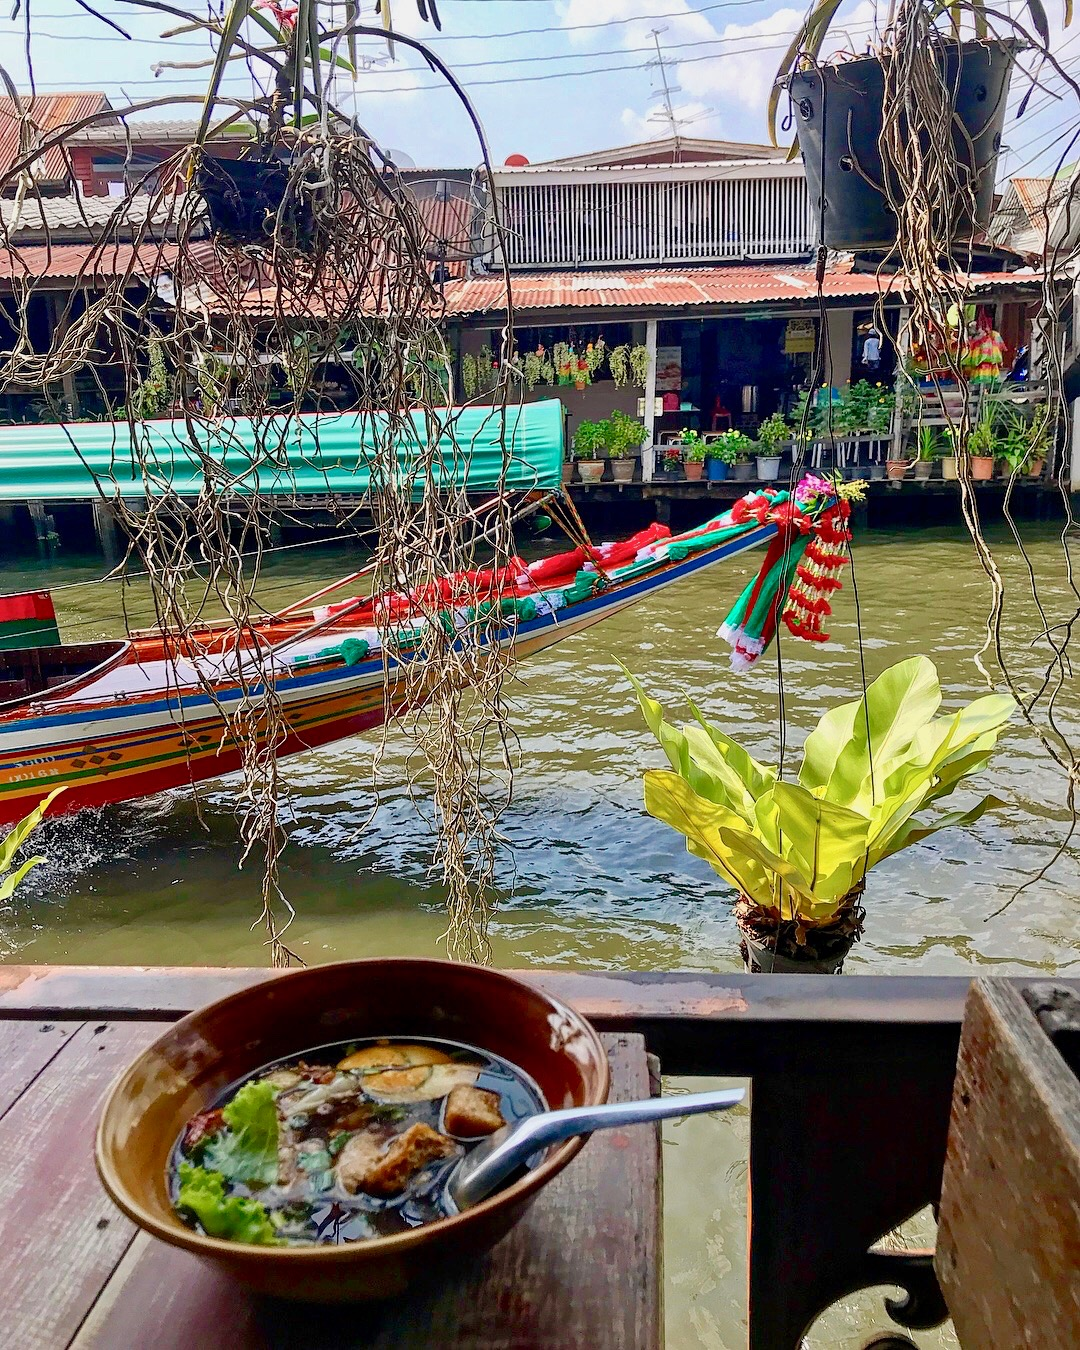 What a great place to enjoy Chinese Noodle Soup